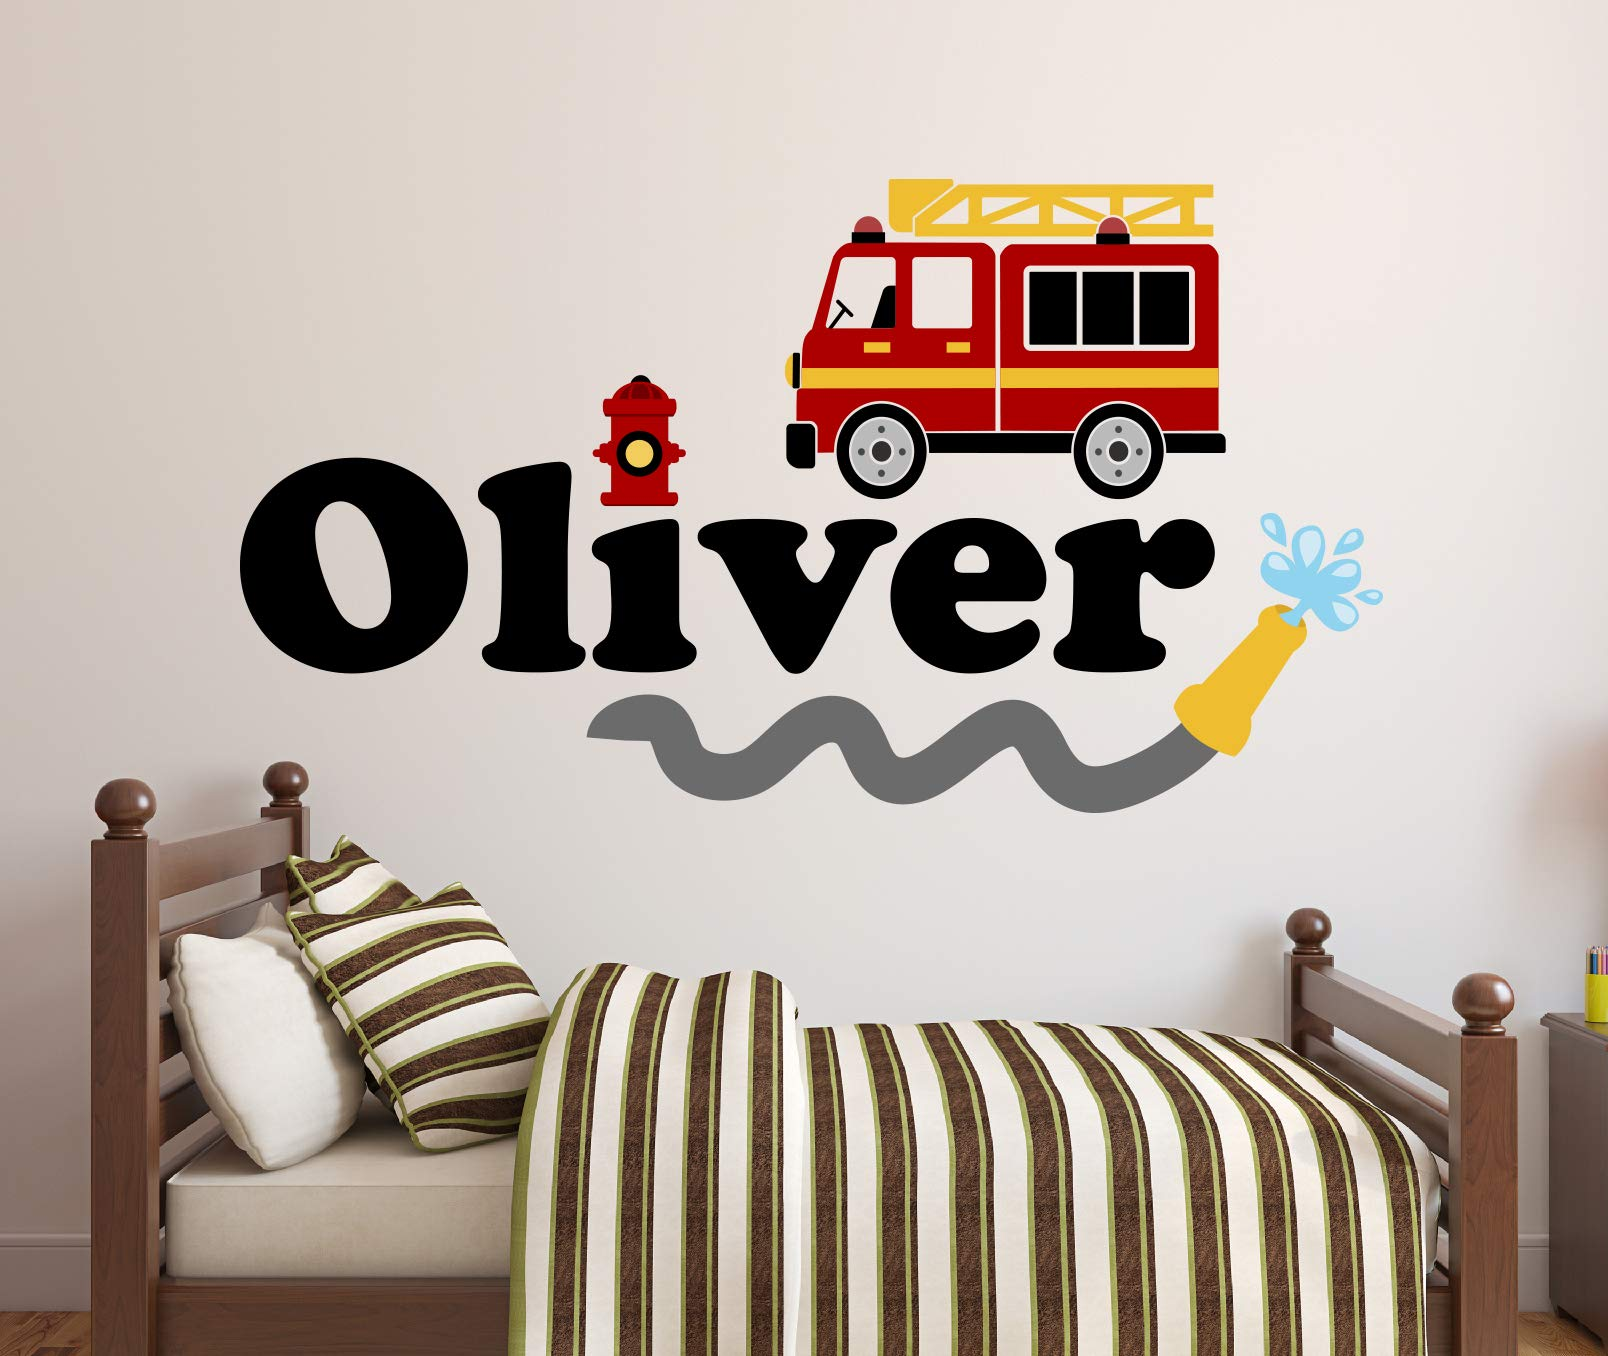 Custom Name Firetruck Wall Decal - Firetruck Wall Decals - Boys Kids Wall Decal - Nursery Wall Decals - Fire Truck Vinyl Wall Art Decor Sticker (52''W x 28''H) by Decalzone Inc